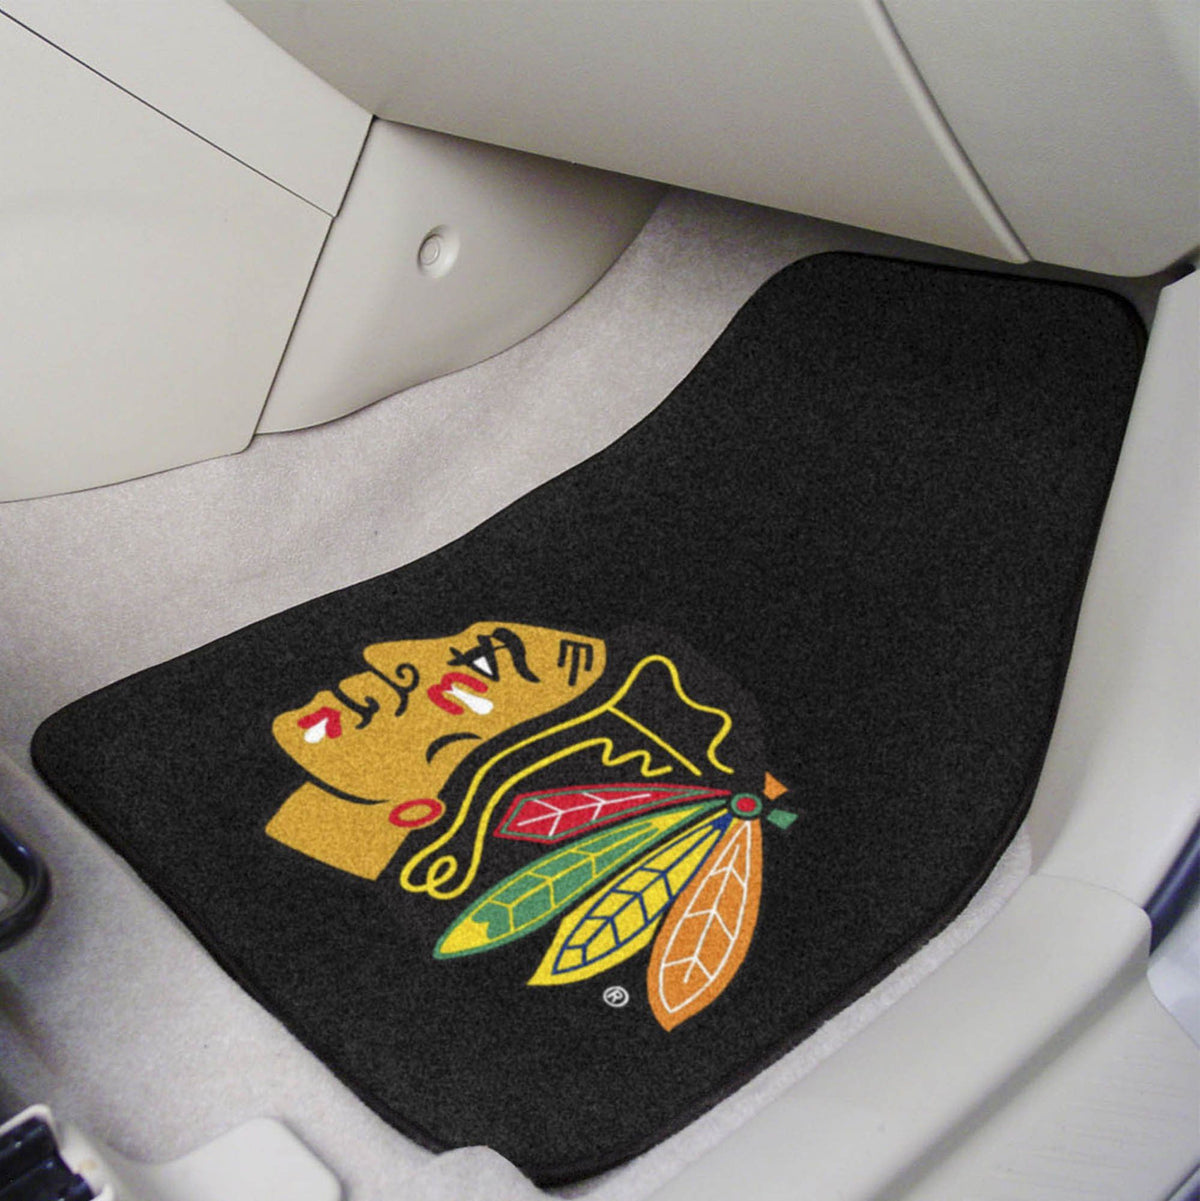 NHL - Carpet Car Mat, 2-Piece Set NHL Mats, Front Car Mats, 2-pc Carpet Car Mat Set, NHL, Auto Fan Mats Chicago Blackhawks